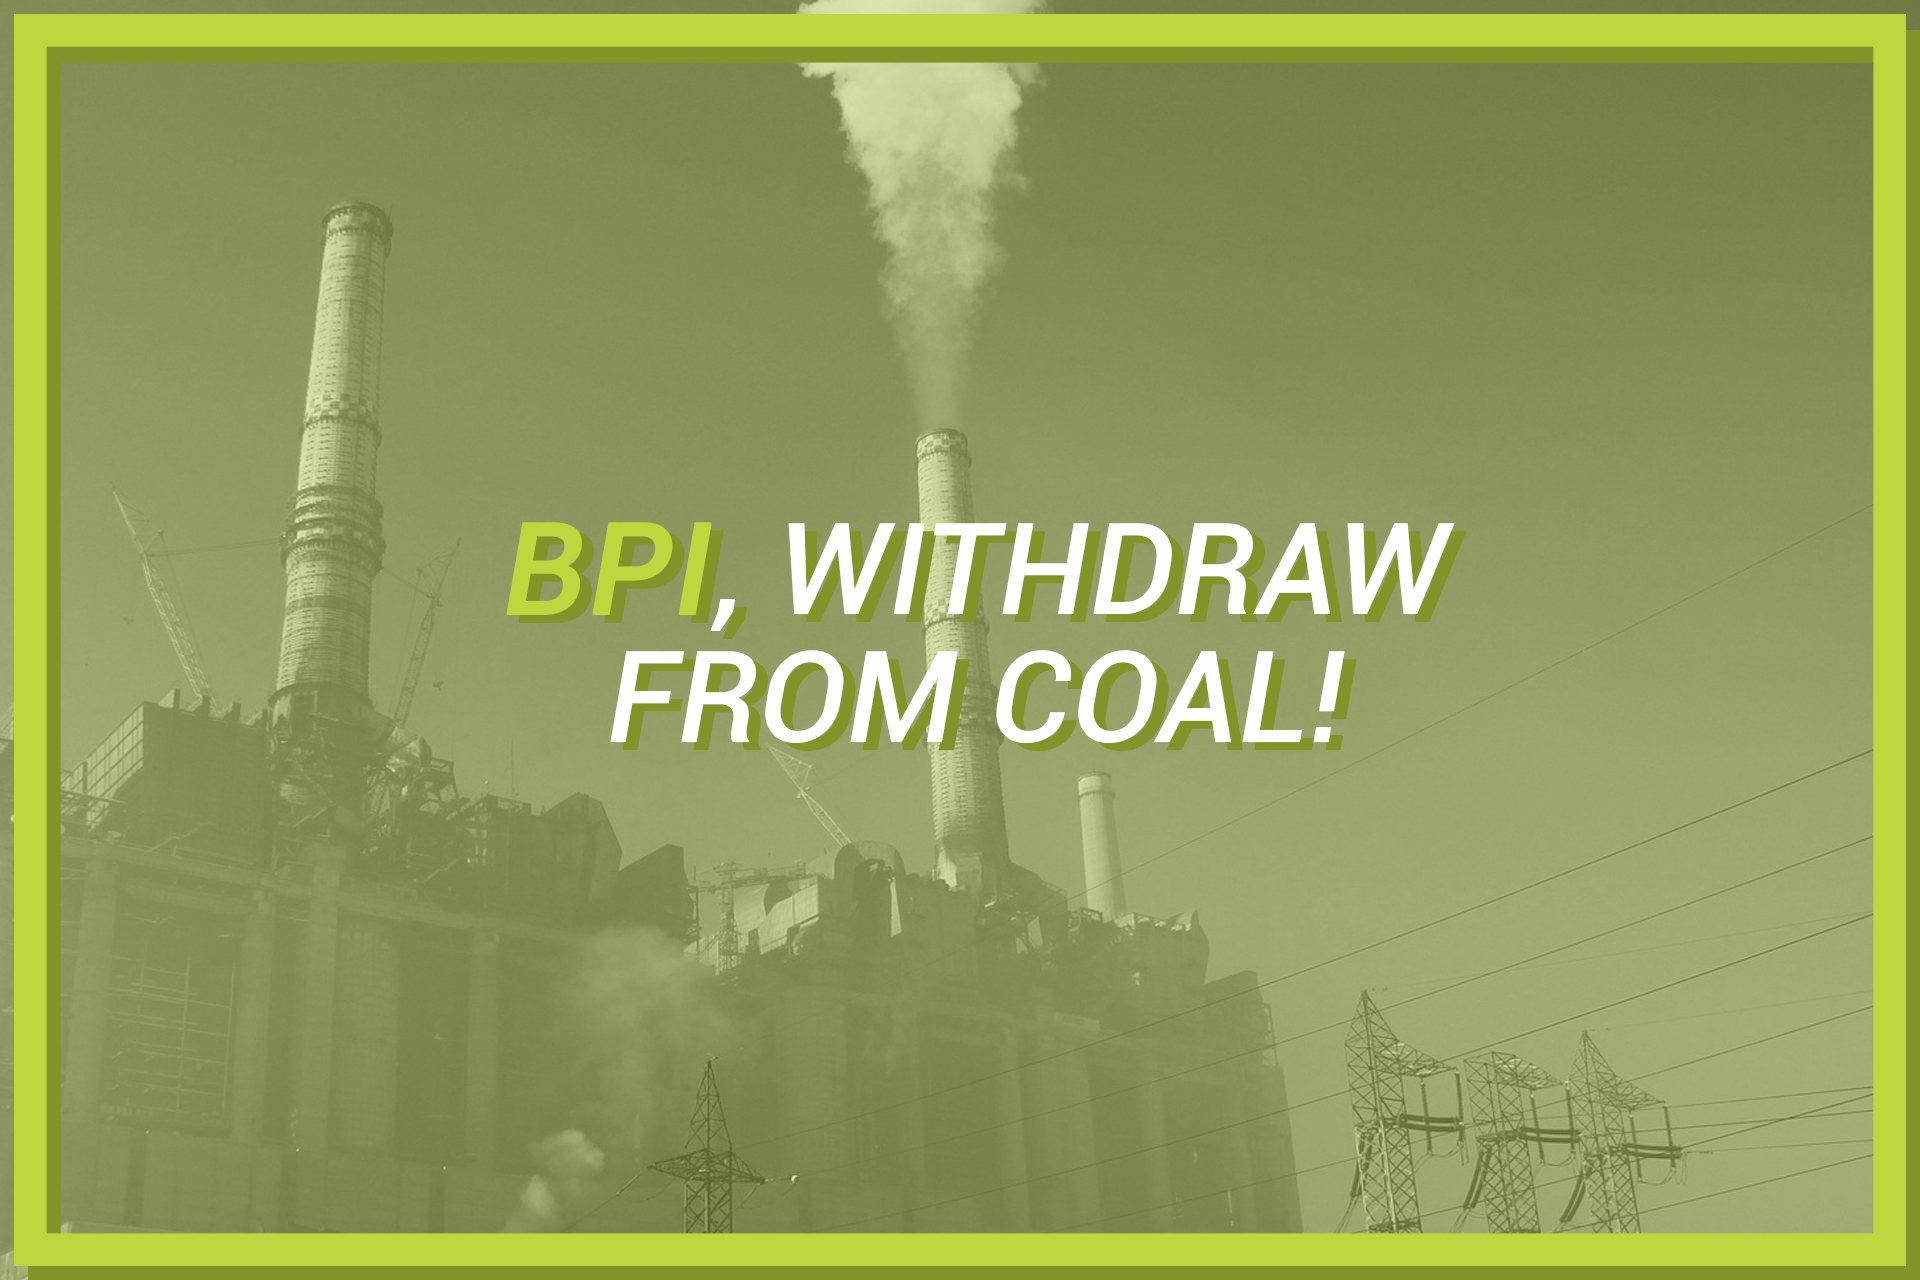 BPI green investments meaningless without coal divestment, says advocacy group